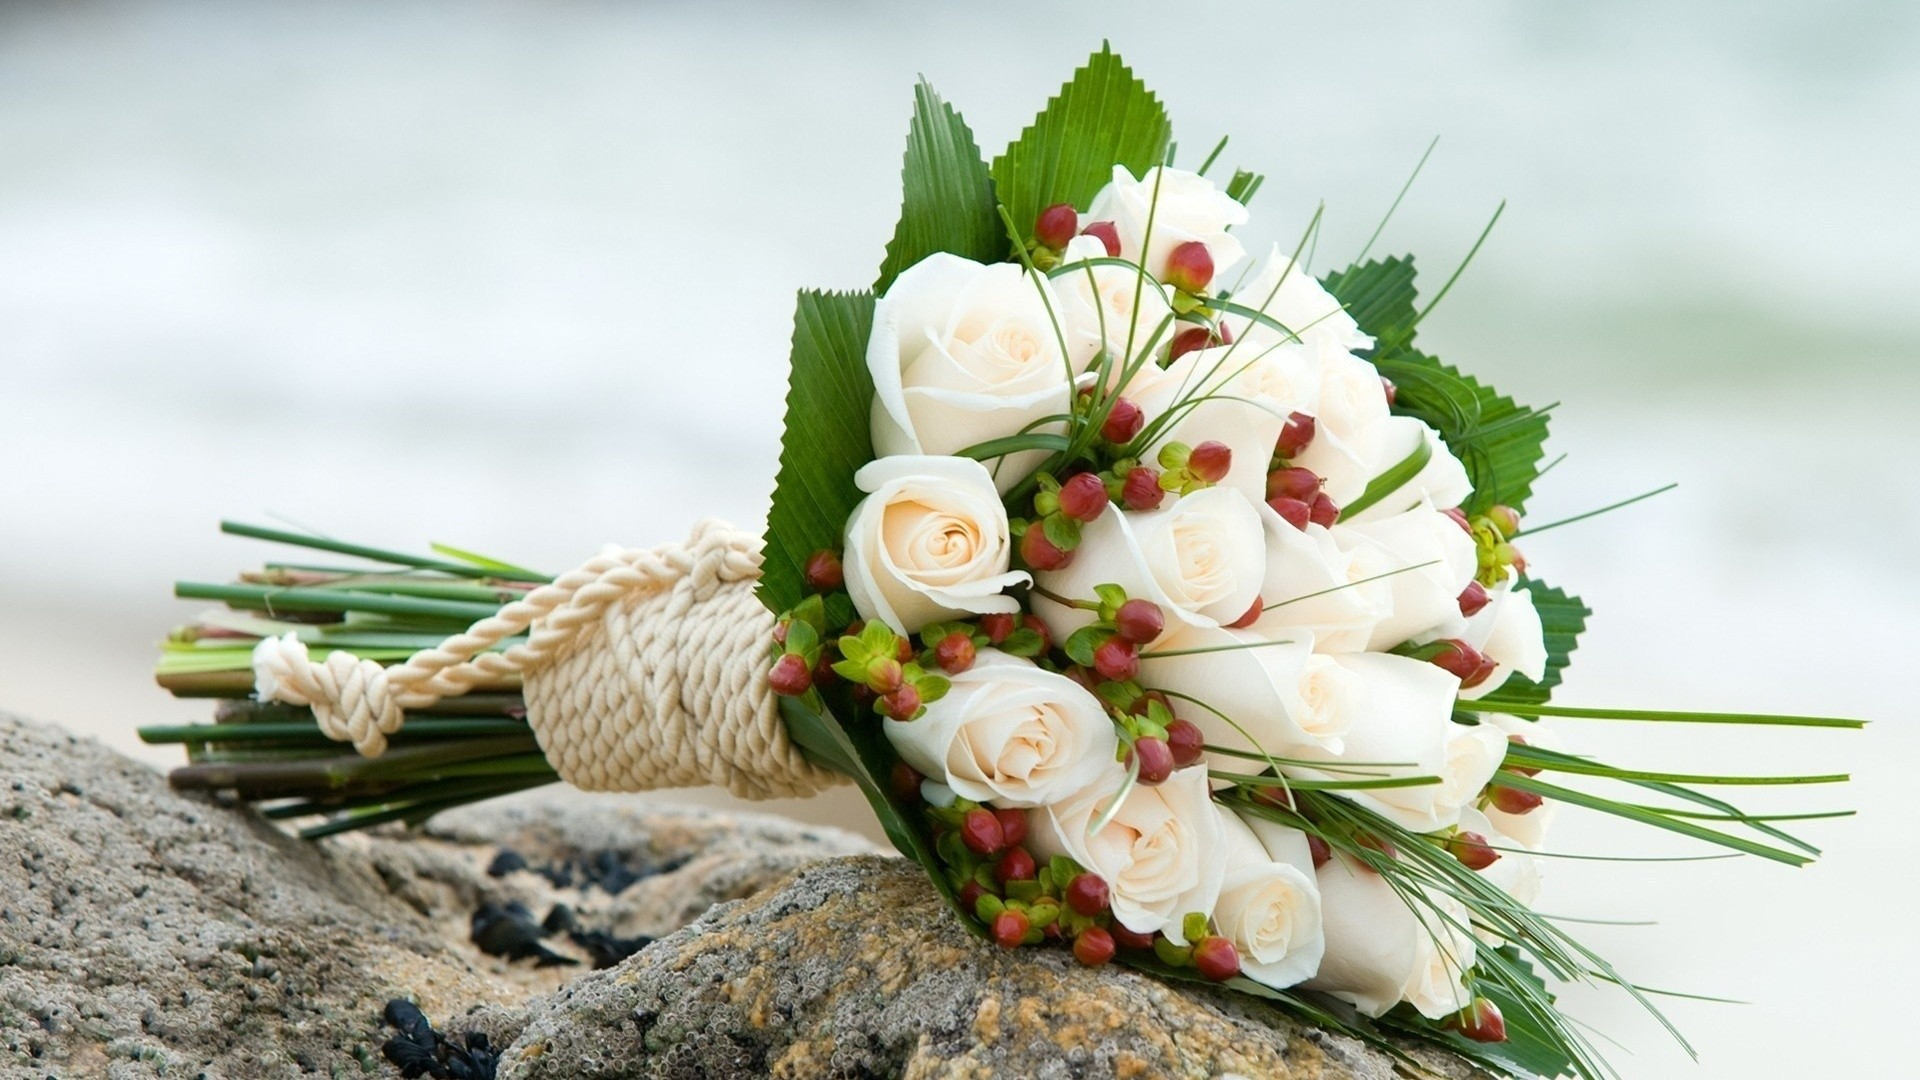 Res: 1920x1080, Image for Wedding Flowers Bouquet Desktop Wallpaper